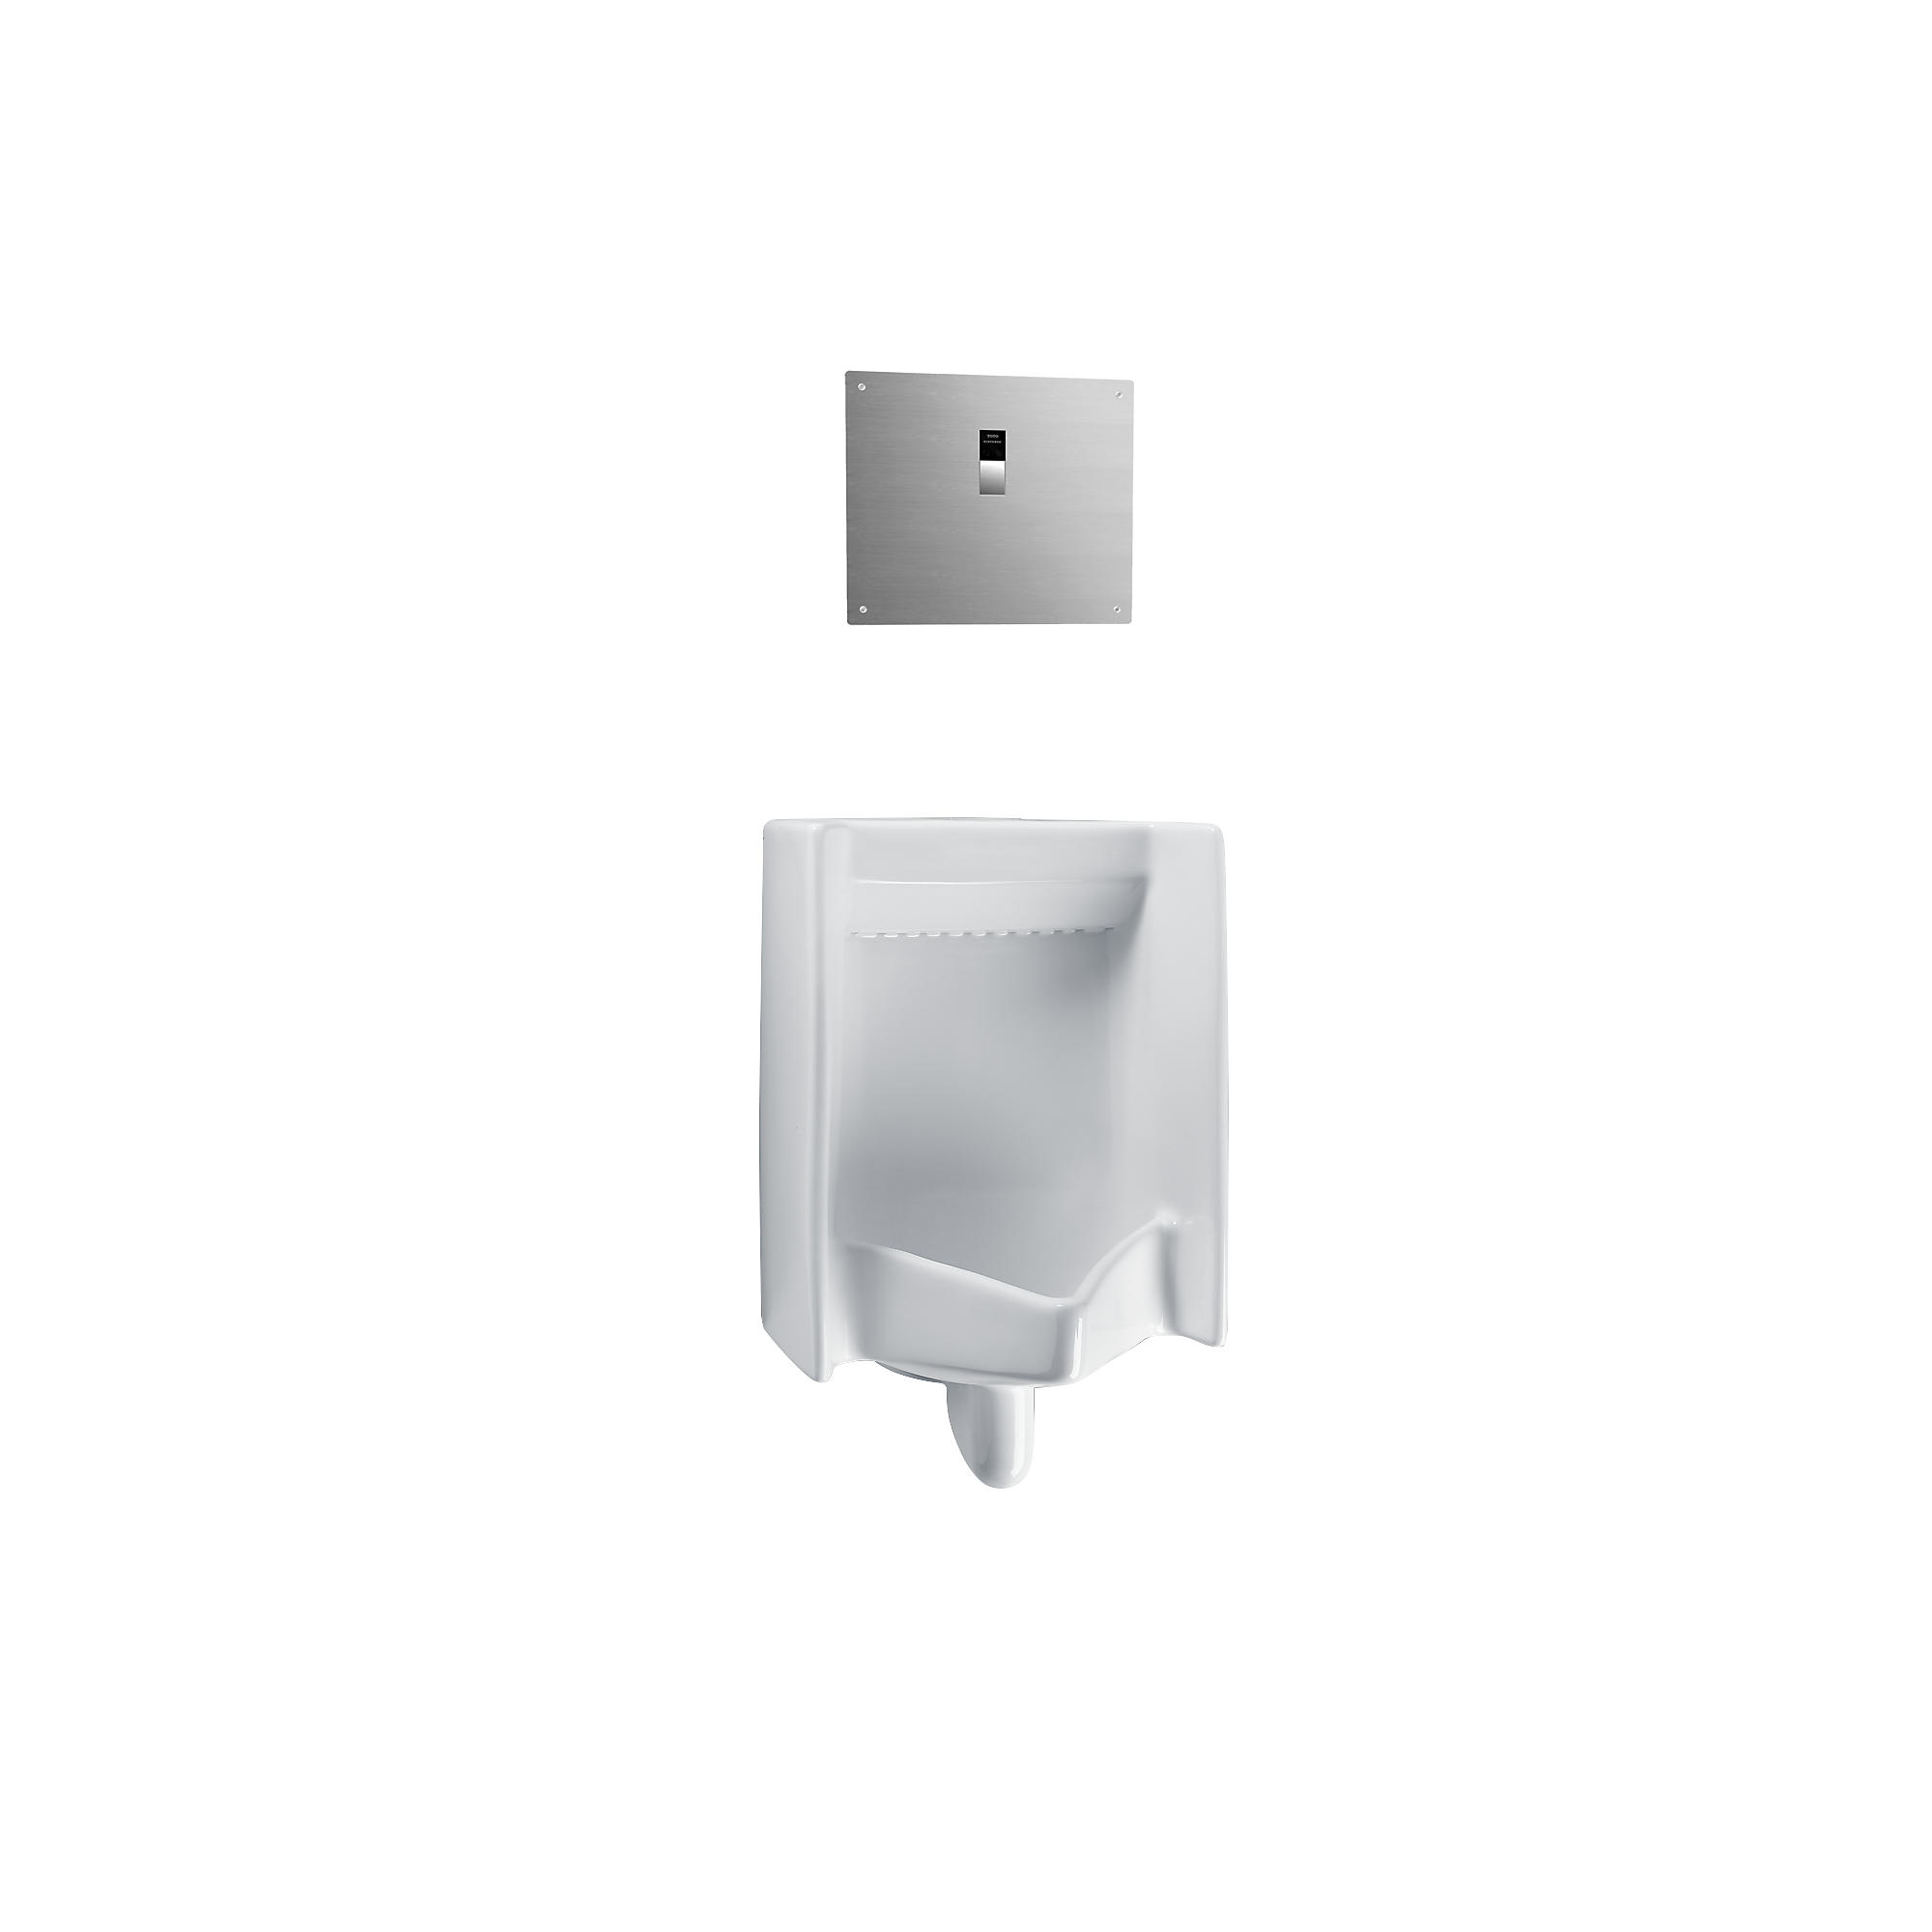 Ut445uv 01 commercial washout high efficiency urinal  0 125 gpf   ada 0